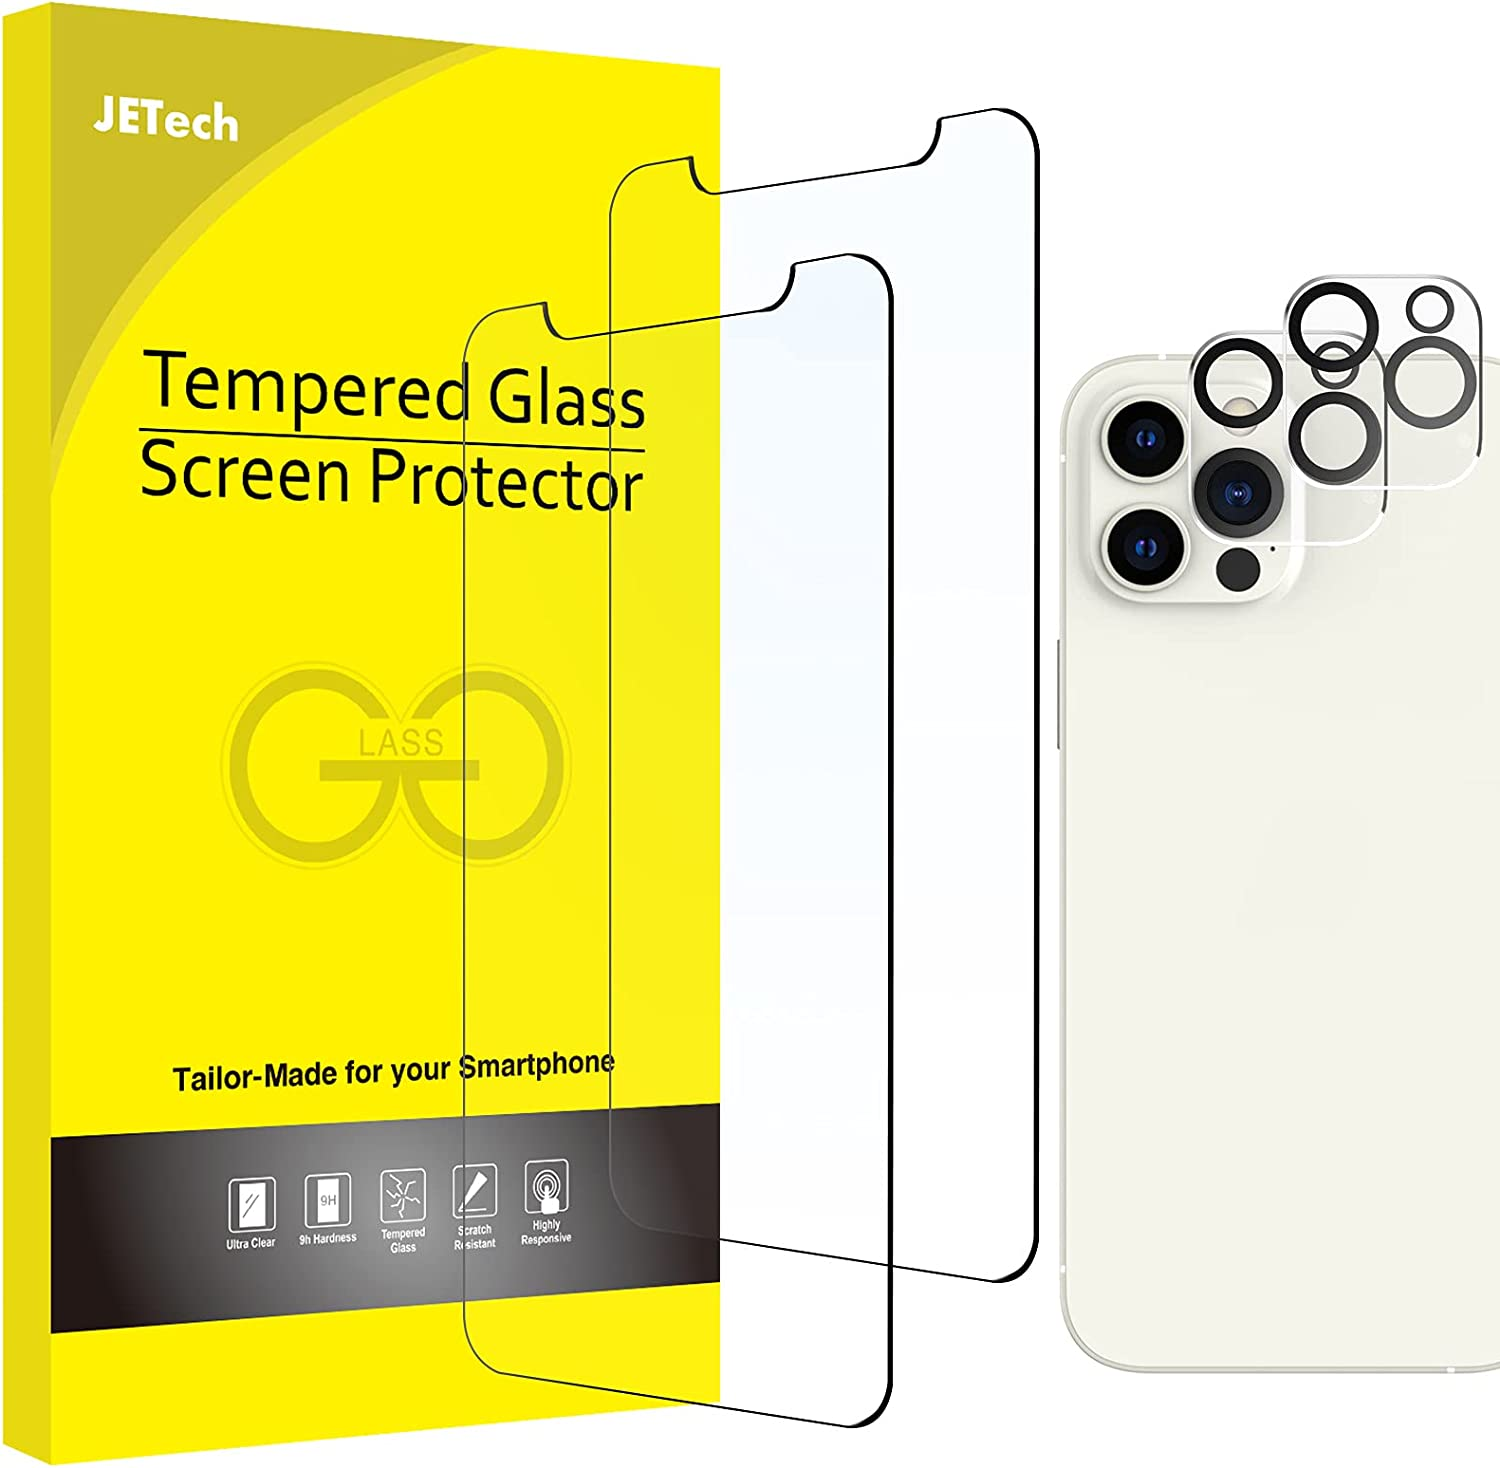 JETech Screen Protector and Camera Lens Protector Compatible with iPhone 12 Pro Max 6.7-Inch, Tempered Glass Film, 2-Pack Each